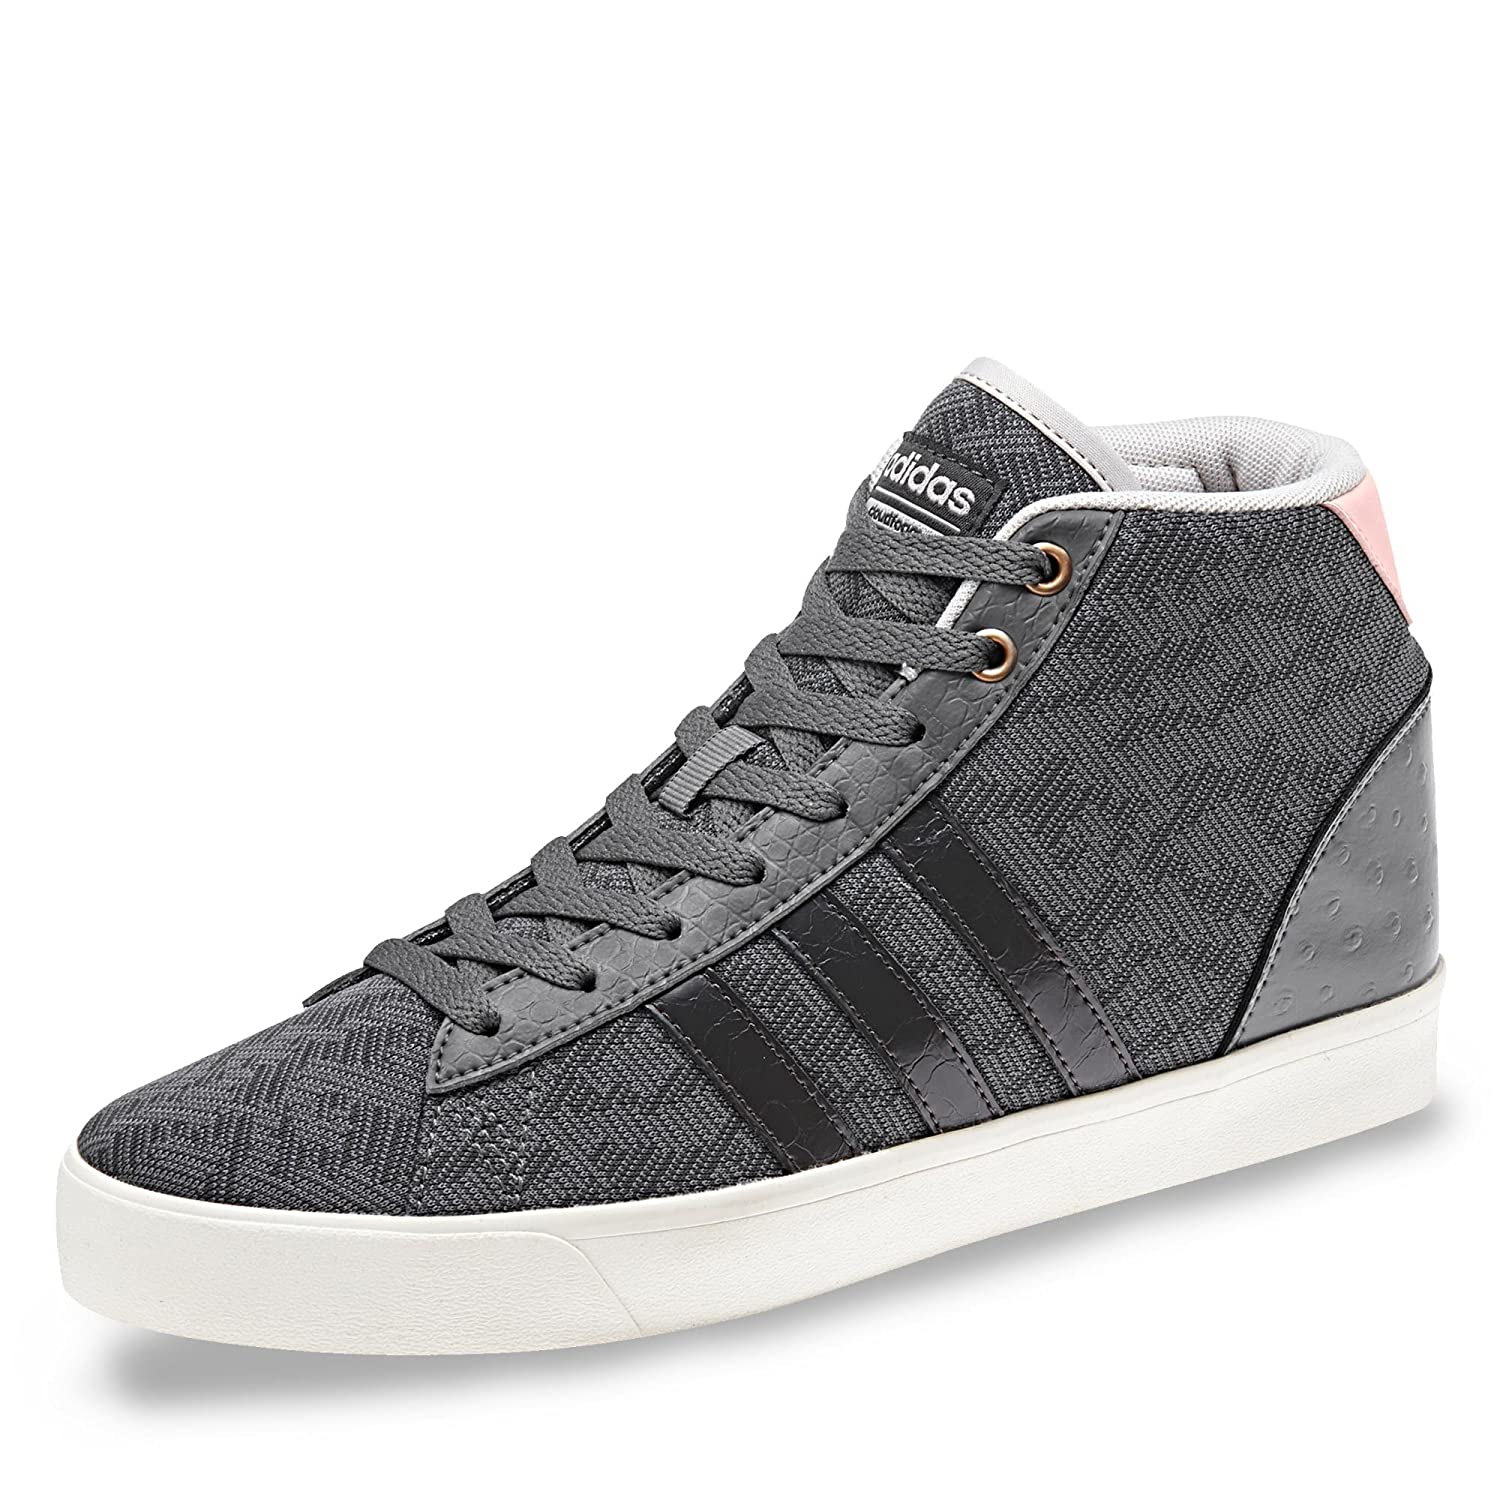 online store 07e31 81284 Amazon.com  adidas Neo Women Shoes Cloudfoam Daily QT Mid Casual Fashion  B74276 New 2018  Fashion Sneakers